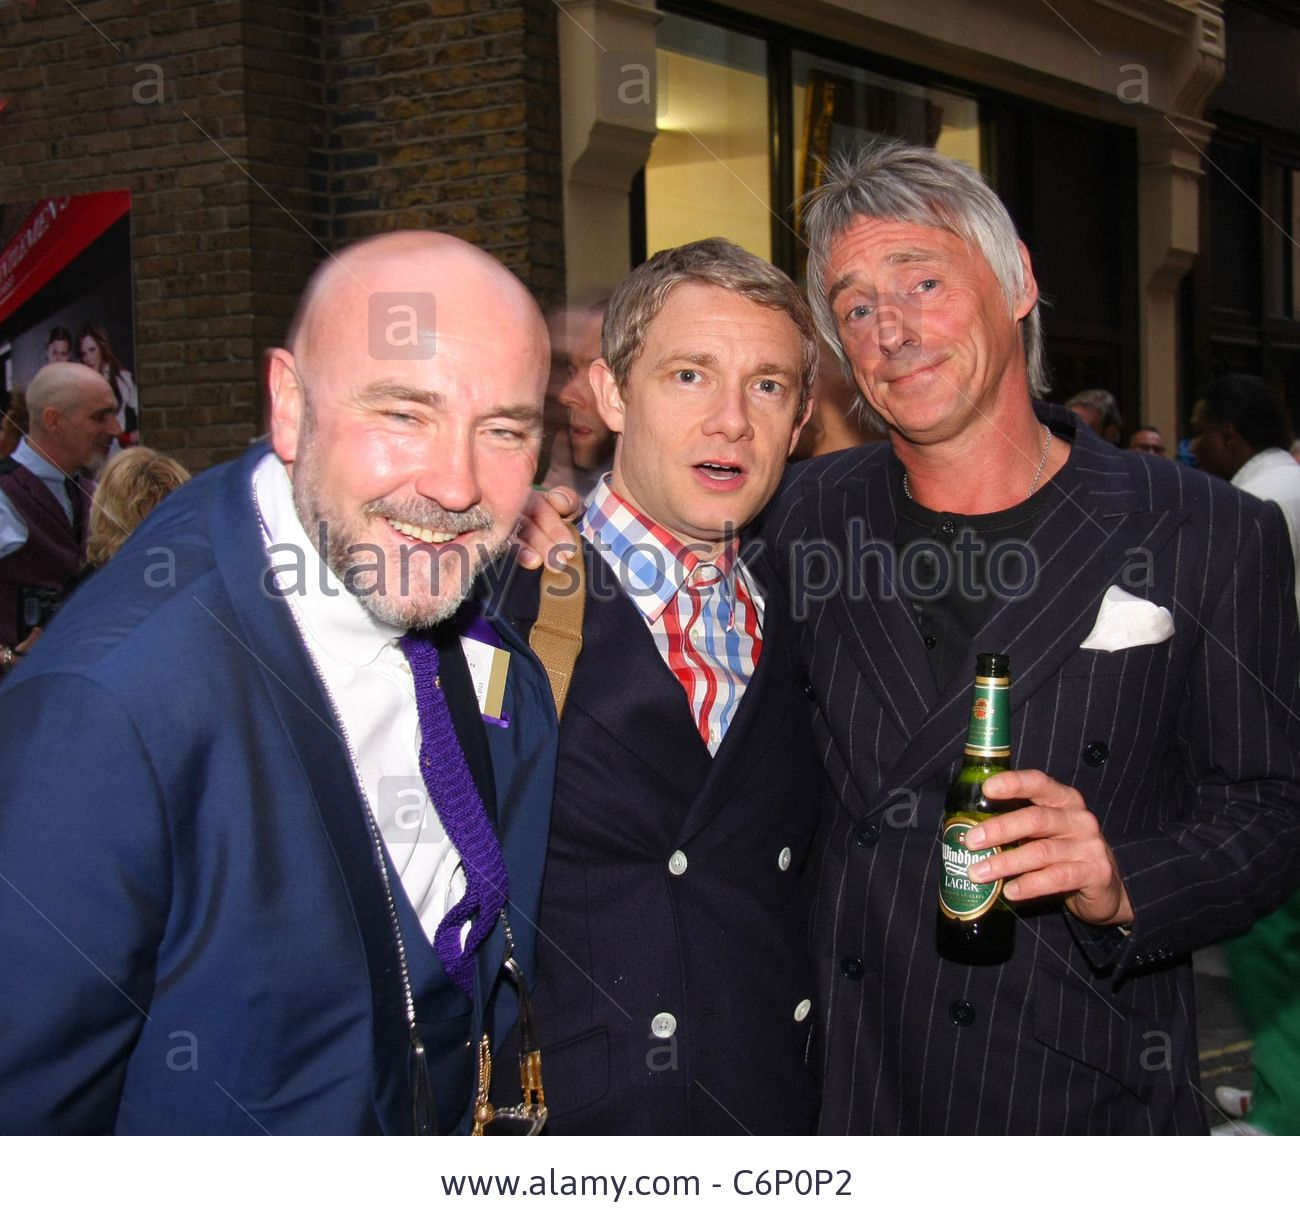 Mark Powell, Martin Freeman and Paul Weller at Mark Powell's shop-opening launch on Marshall Street.